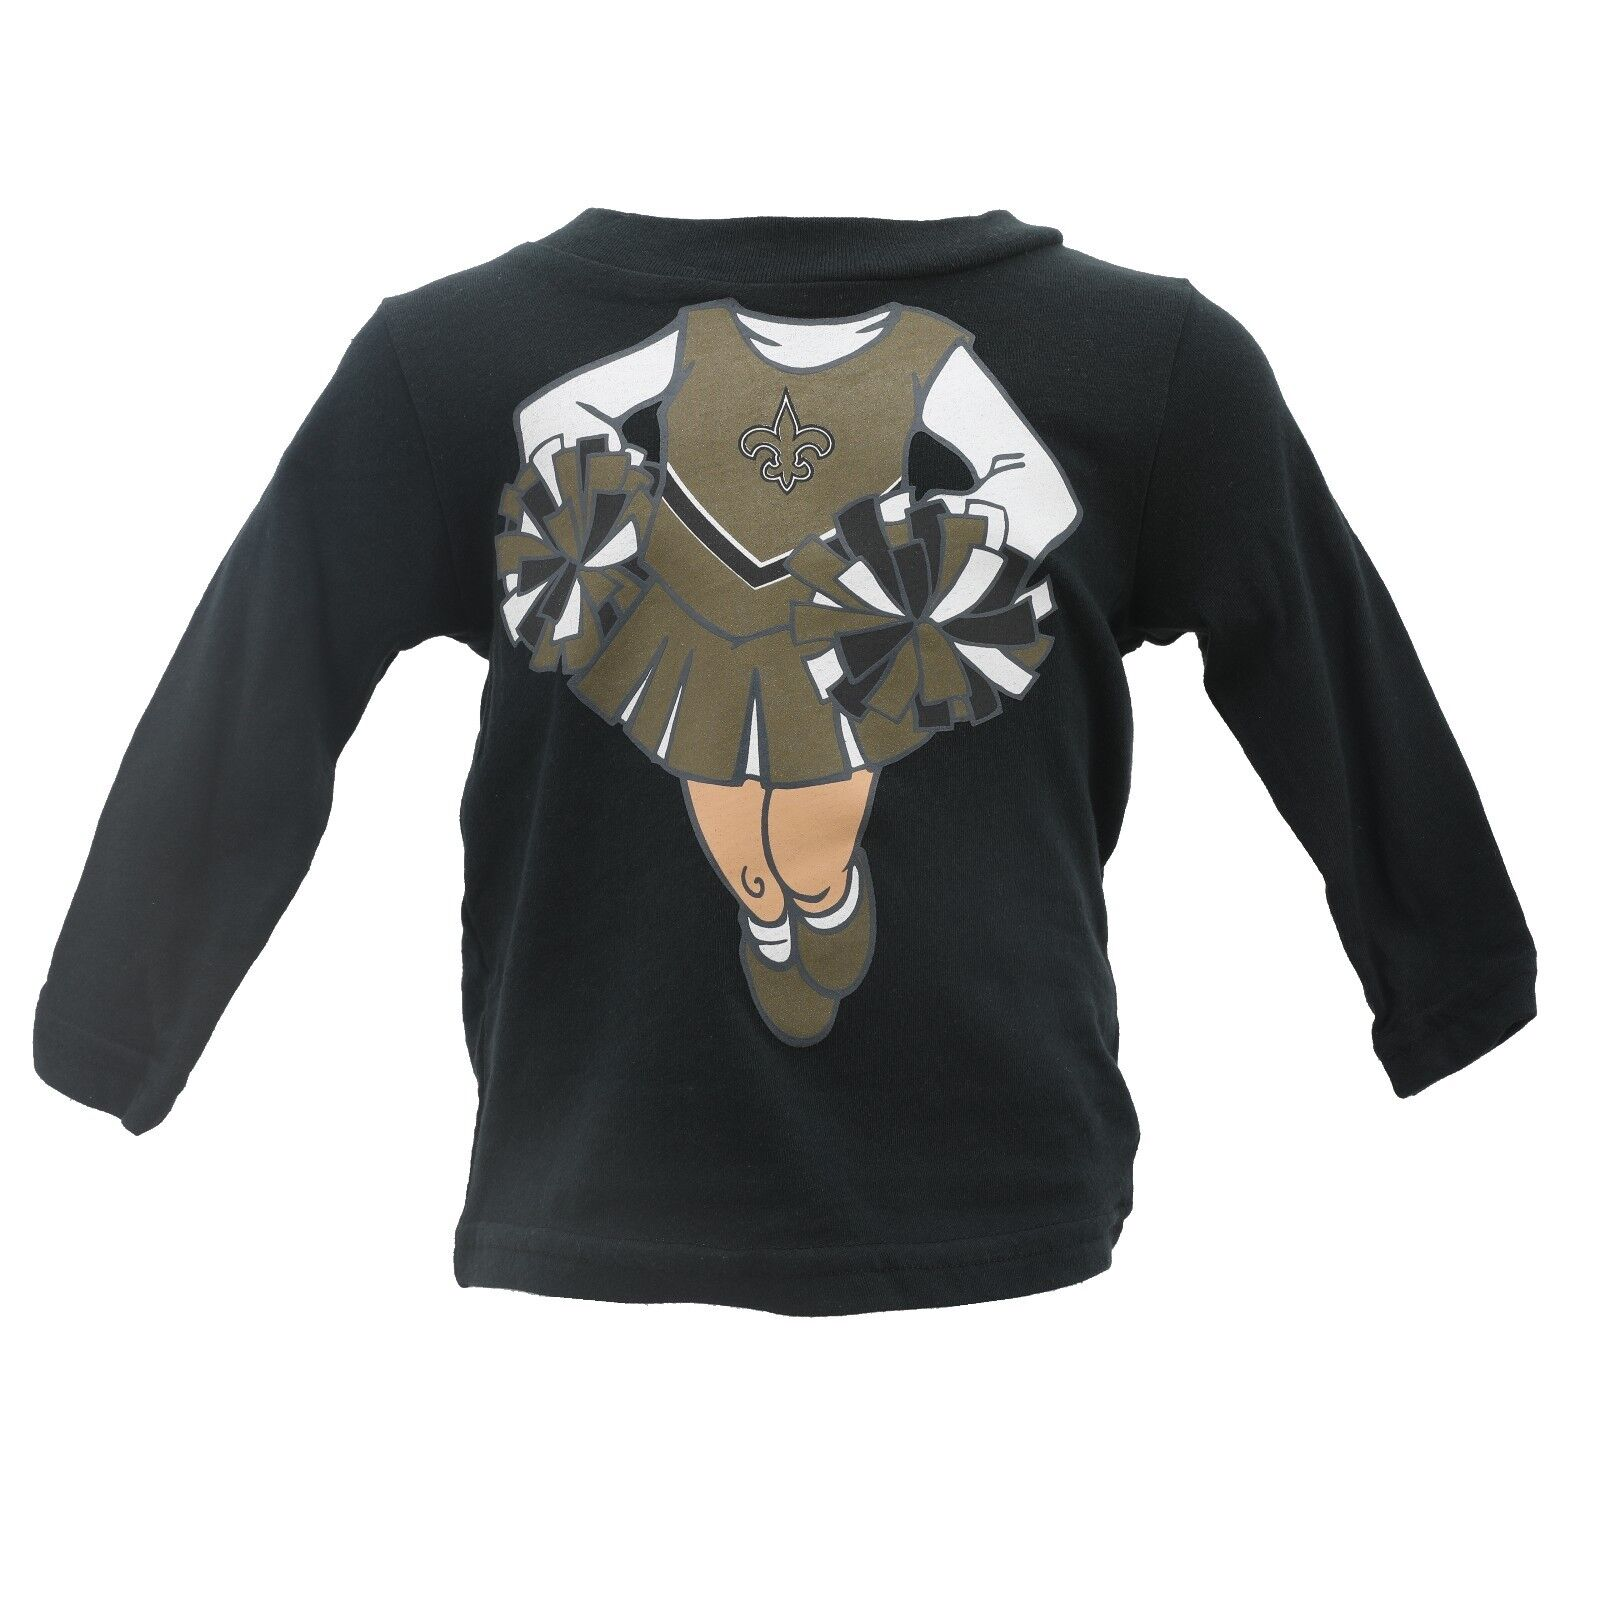 online store b0779 0eb5f Details about New Orleans Saints NFL Official Infant Girls Long Sleeve  Shirt New with Tags